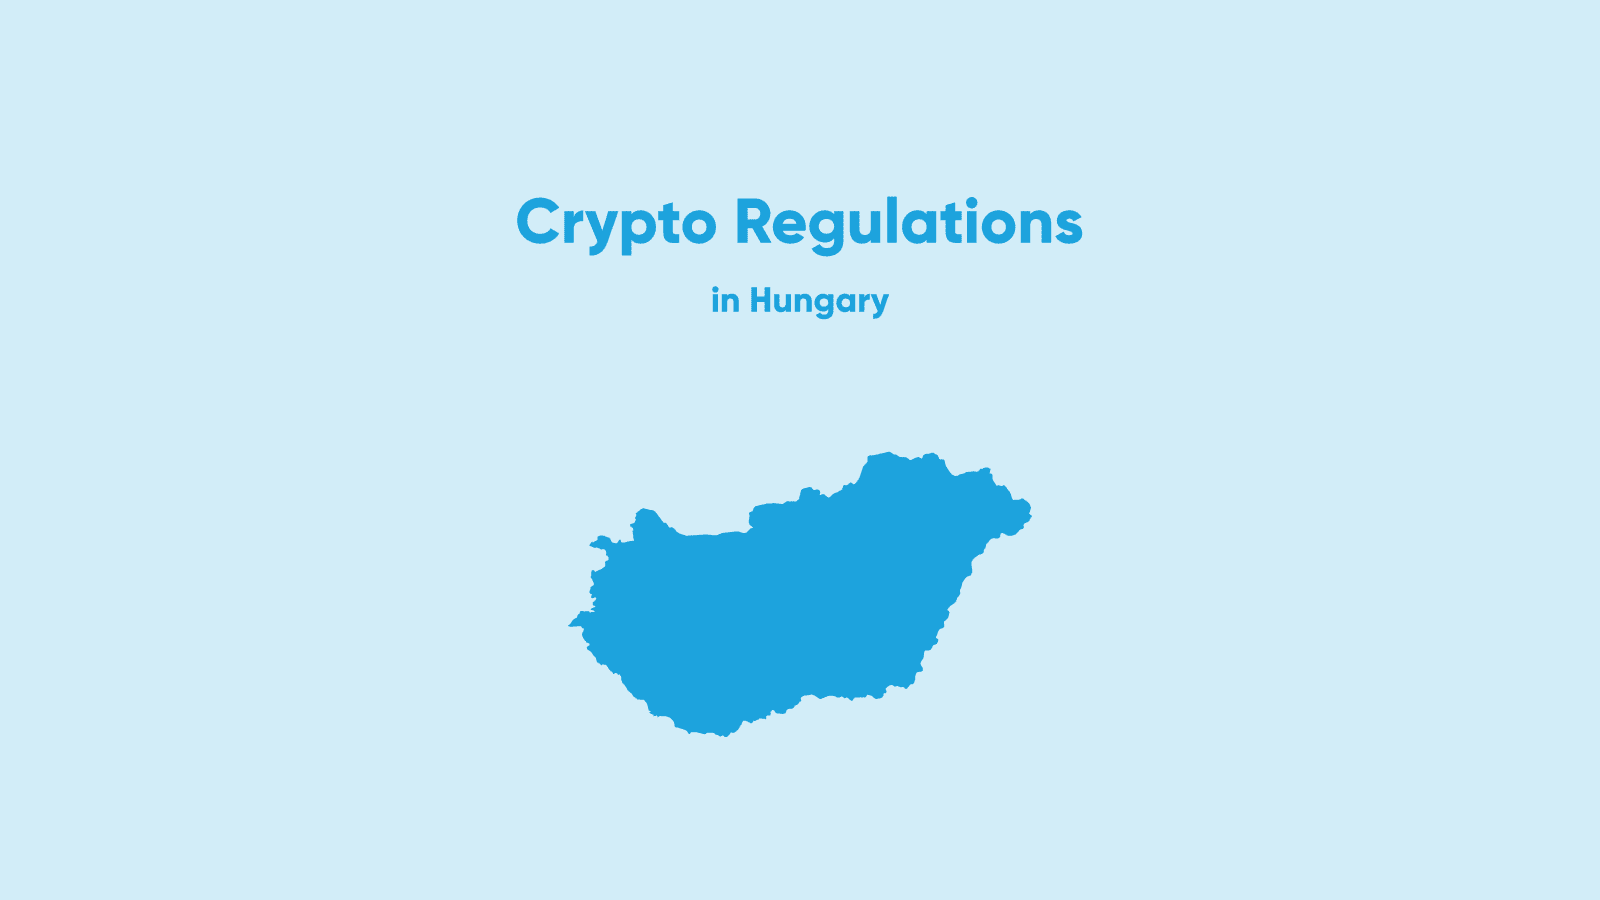 cryptocurrency cryptocurrencies taxation taxes legal bitcoin hungary